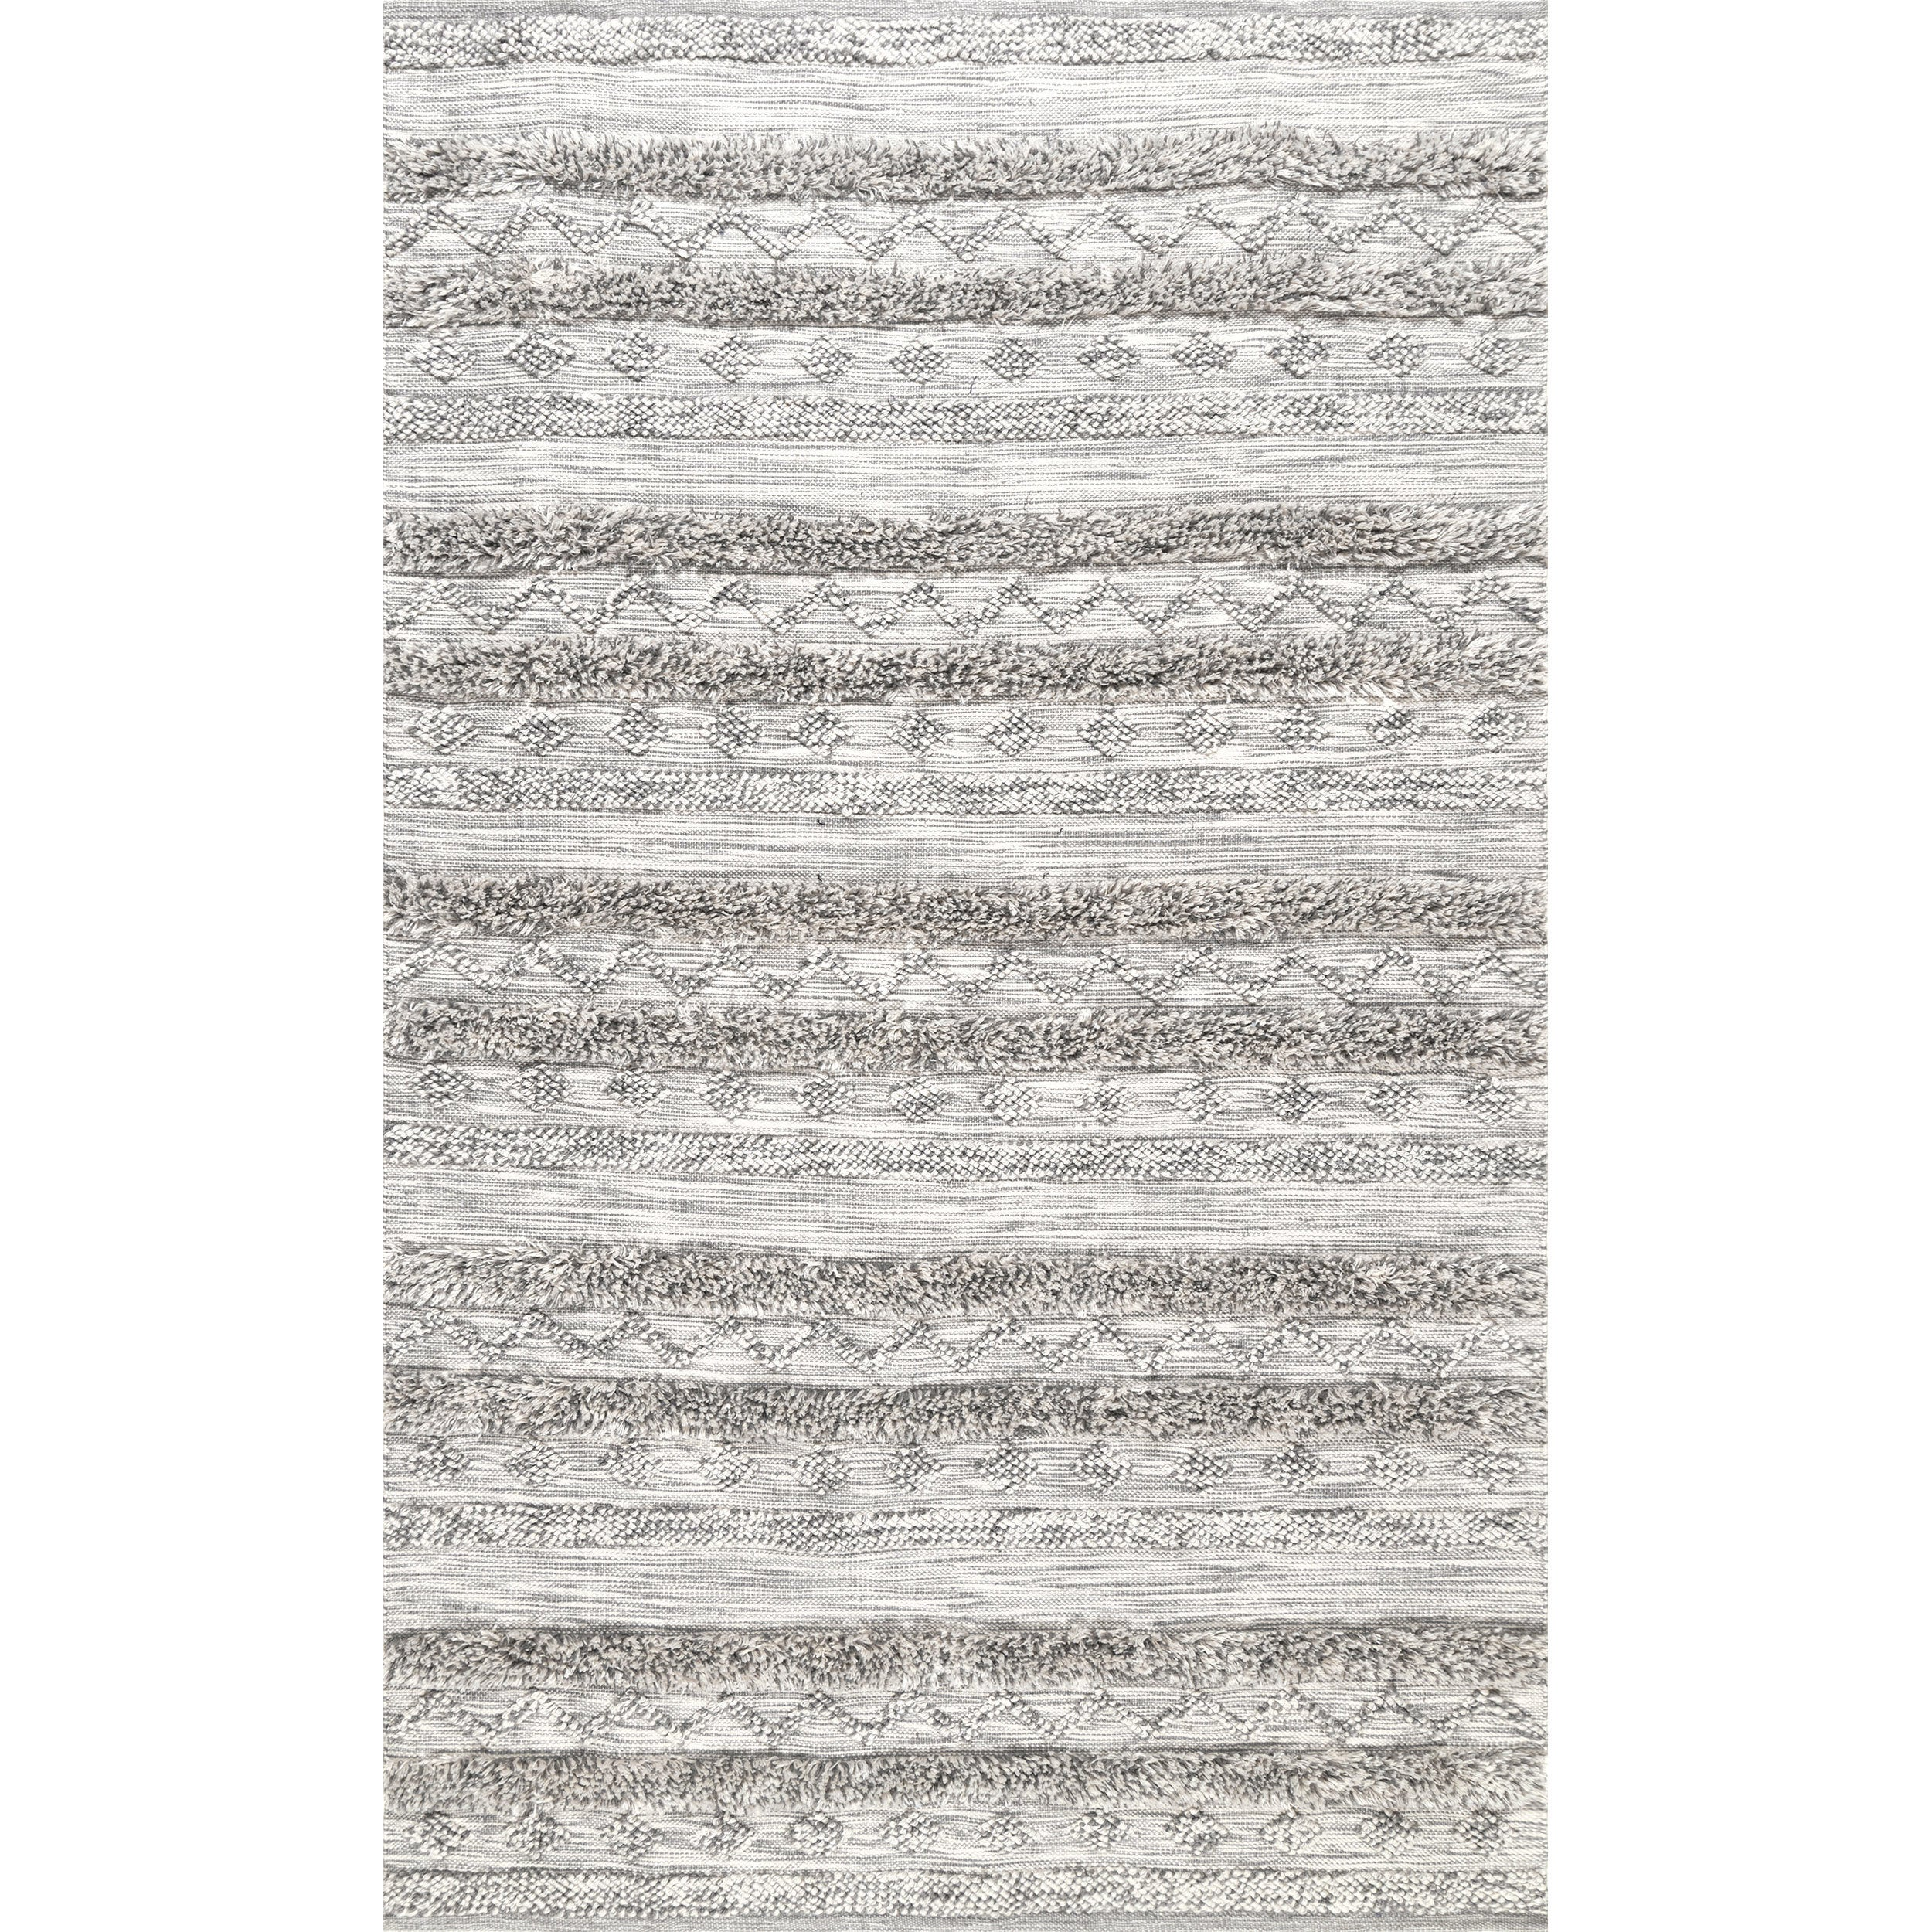 Best nuLoom Grey Tribal Band Stripe Area Rug (7'6 x 9'6) - Free  HI05